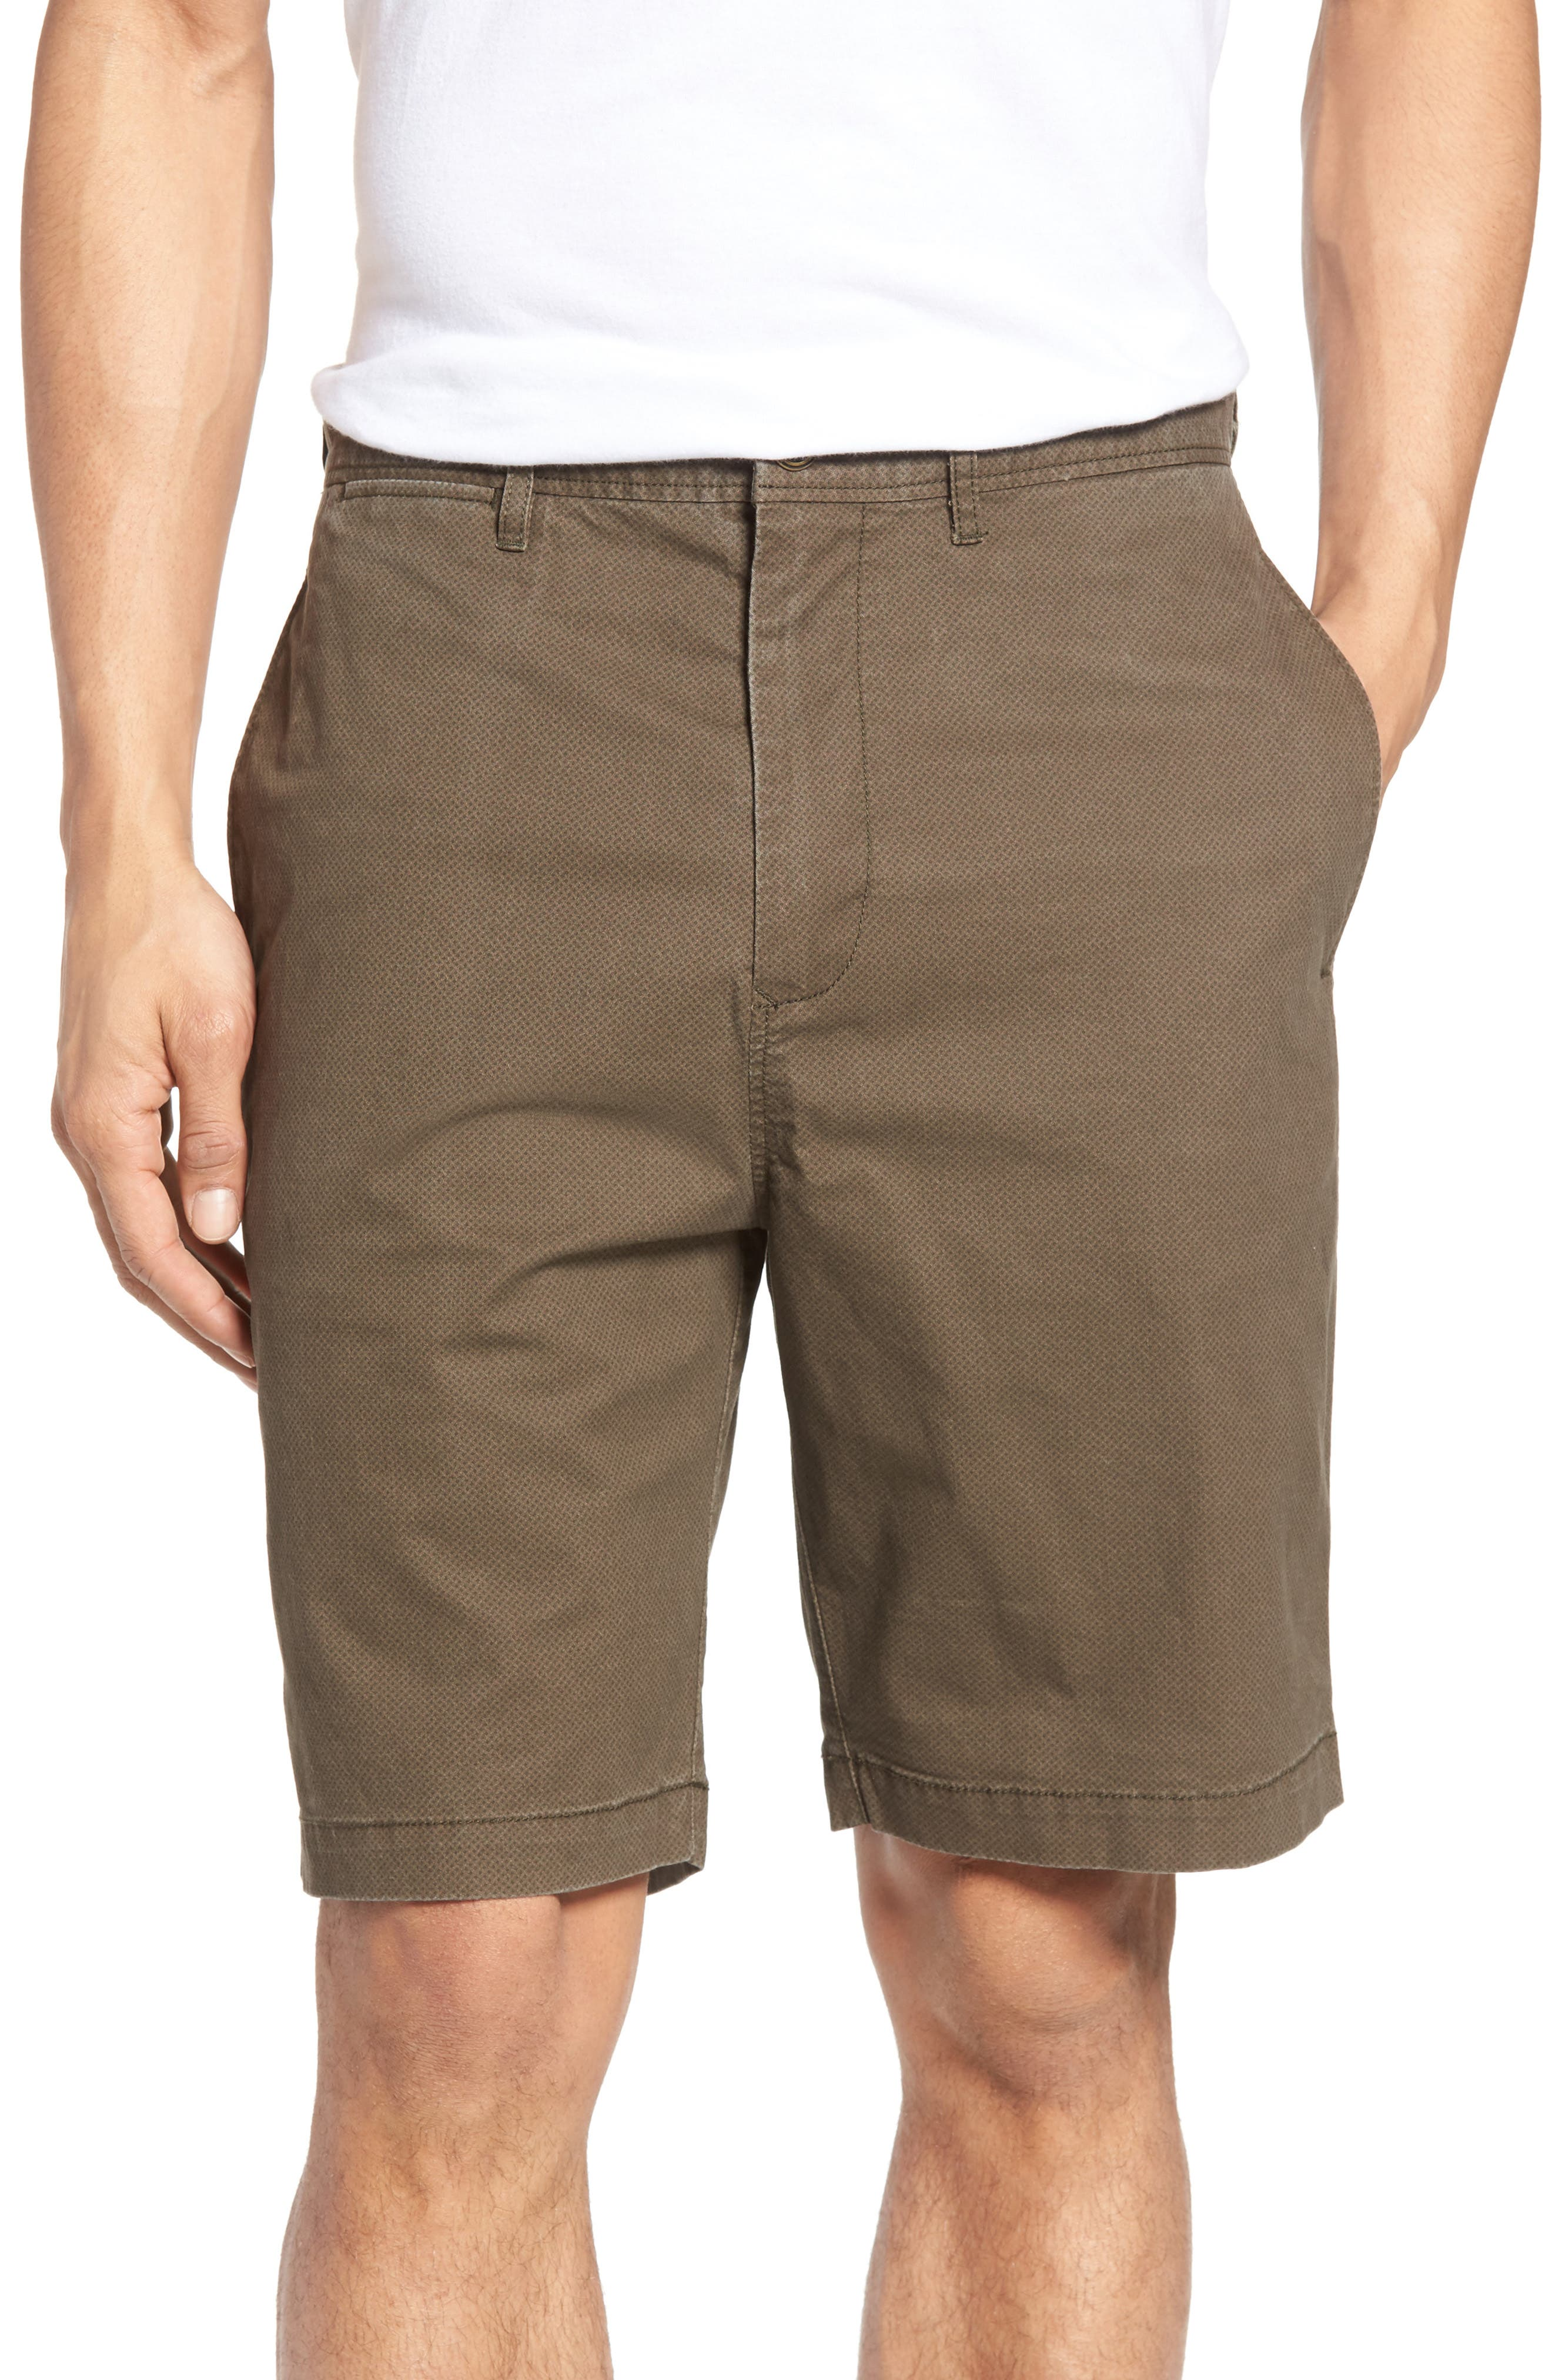 Benneydale Shorts,                             Main thumbnail 1, color,                             Olive